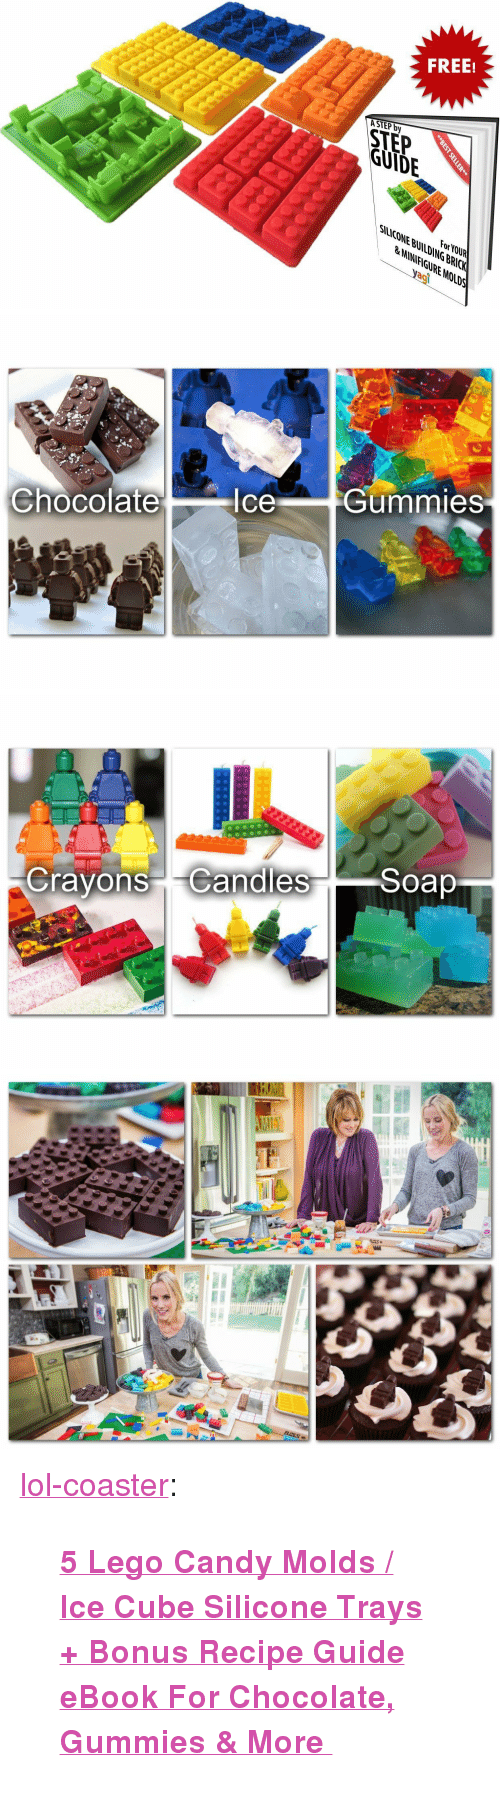 """Agi: FREE!  ASTEP by  STEP  GUIDE  For YOUR  SIuCONE BULDING BRICK  LANNIFIGURE MOLDS  agi   Chocolate  IceGummies   ravons C  andies  Soap <p><a href=""""http://lol-coaster.tumblr.com/post/156098865102/5-lego-candy-molds-ice-cube-silicone-trays"""" class=""""tumblr_blog"""">lol-coaster</a>:</p><blockquote><p><a href=""""https://www.amazon.com/dp/B00ZE643M6""""><b>  5 Lego Candy Molds / Ice Cube Silicone Trays + Bonus Recipe Guide eBook For Chocolate, Gummies &amp; More  </b></a><br/></p></blockquote>"""